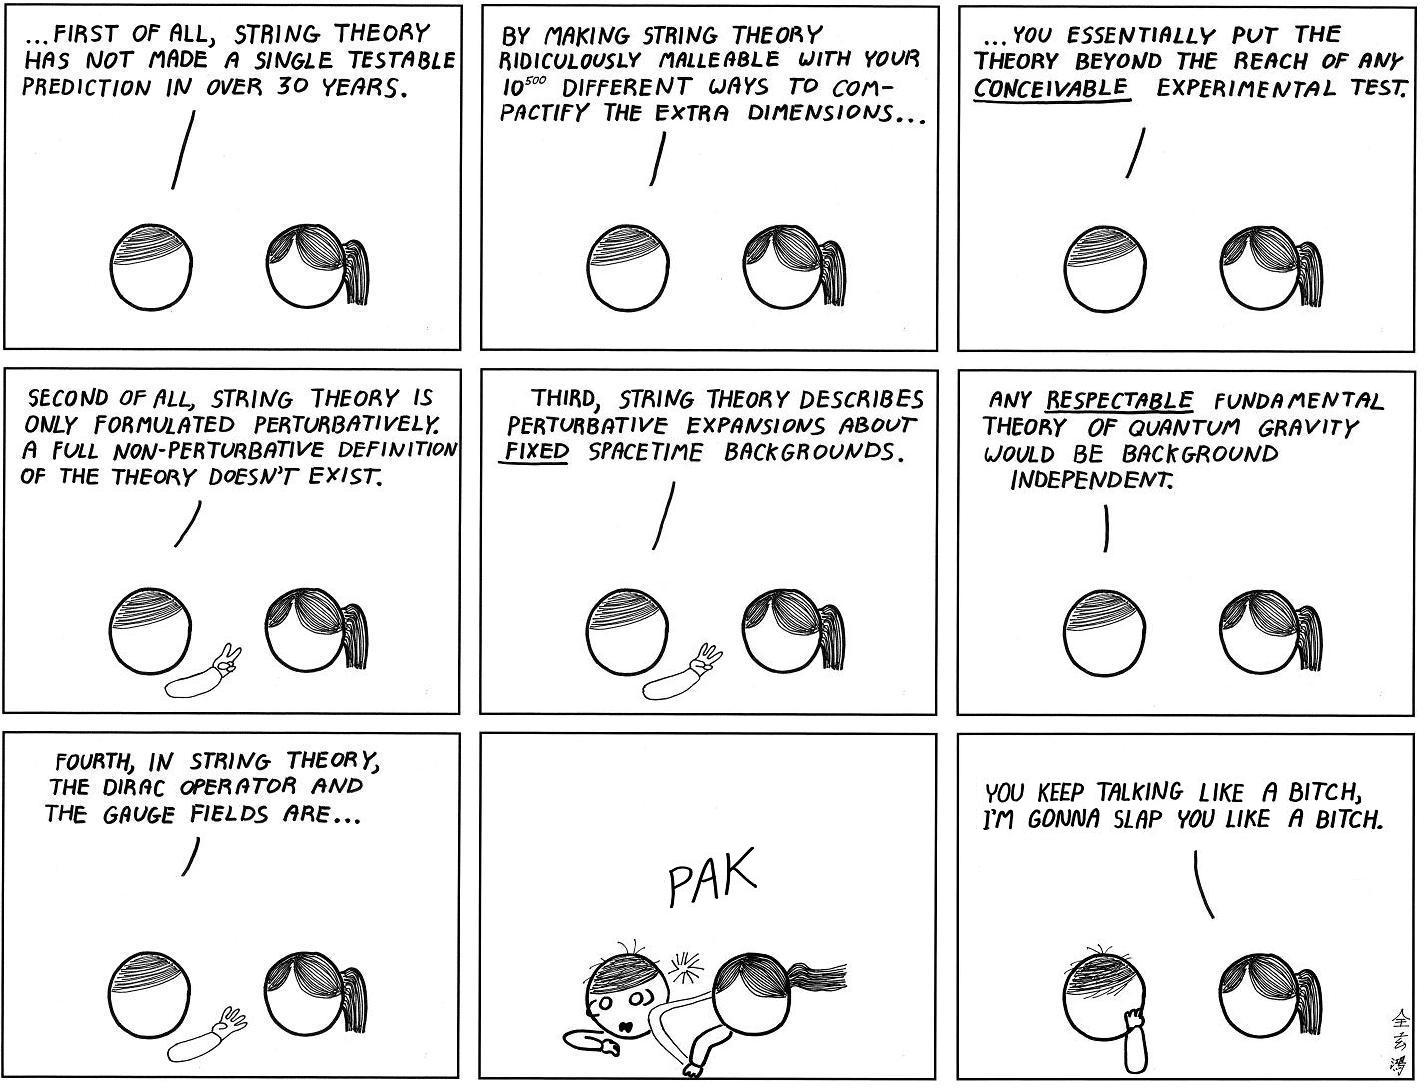 arguing with a string theorist by abstruse goose